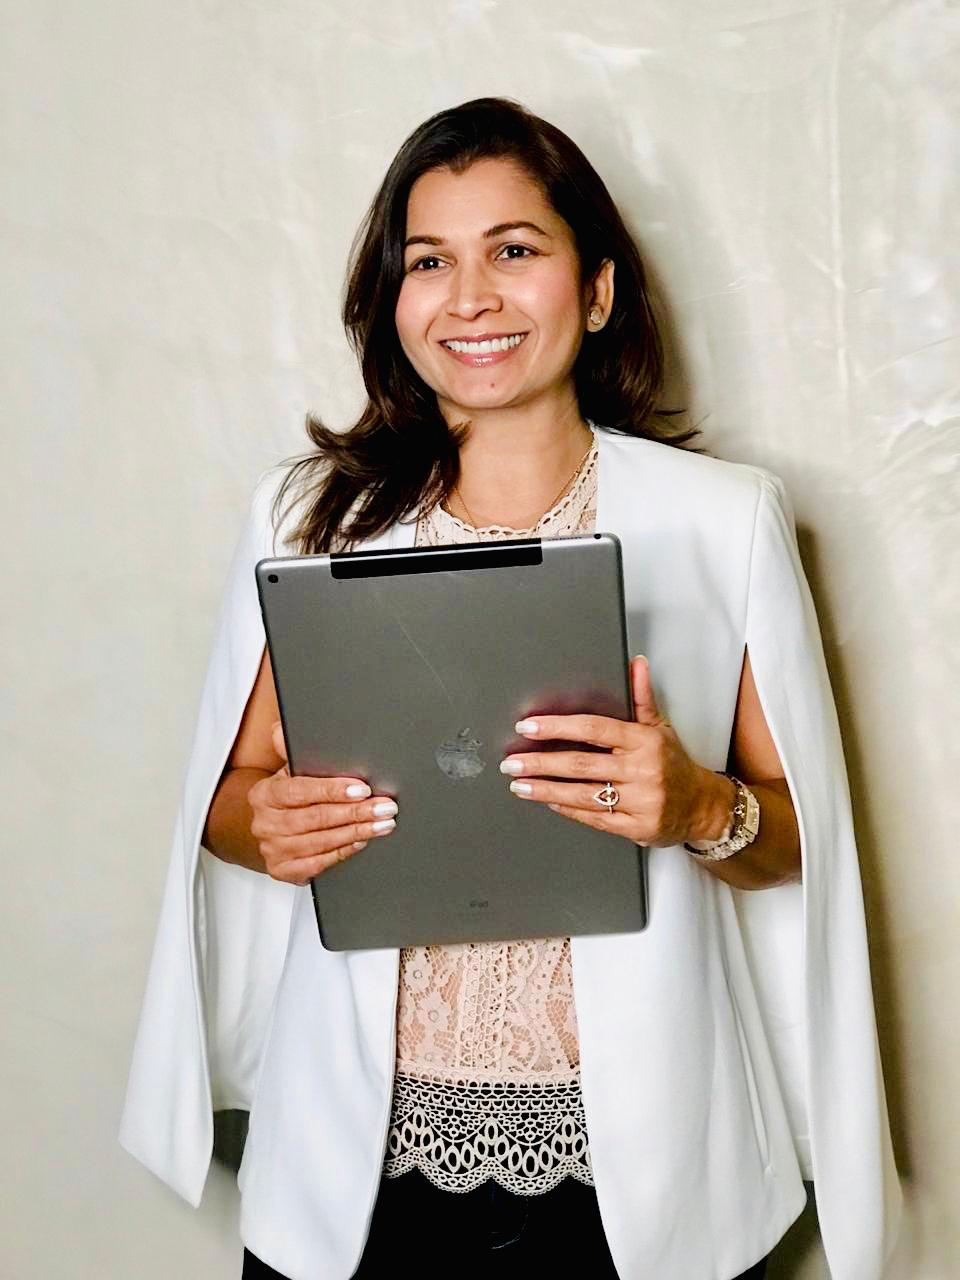 Primary nutrition, Nourish, Nutrition training, Professional nutritionist, Health coach, Nutrition certificate course, Integrative nutritionist and health coach, payal kothari